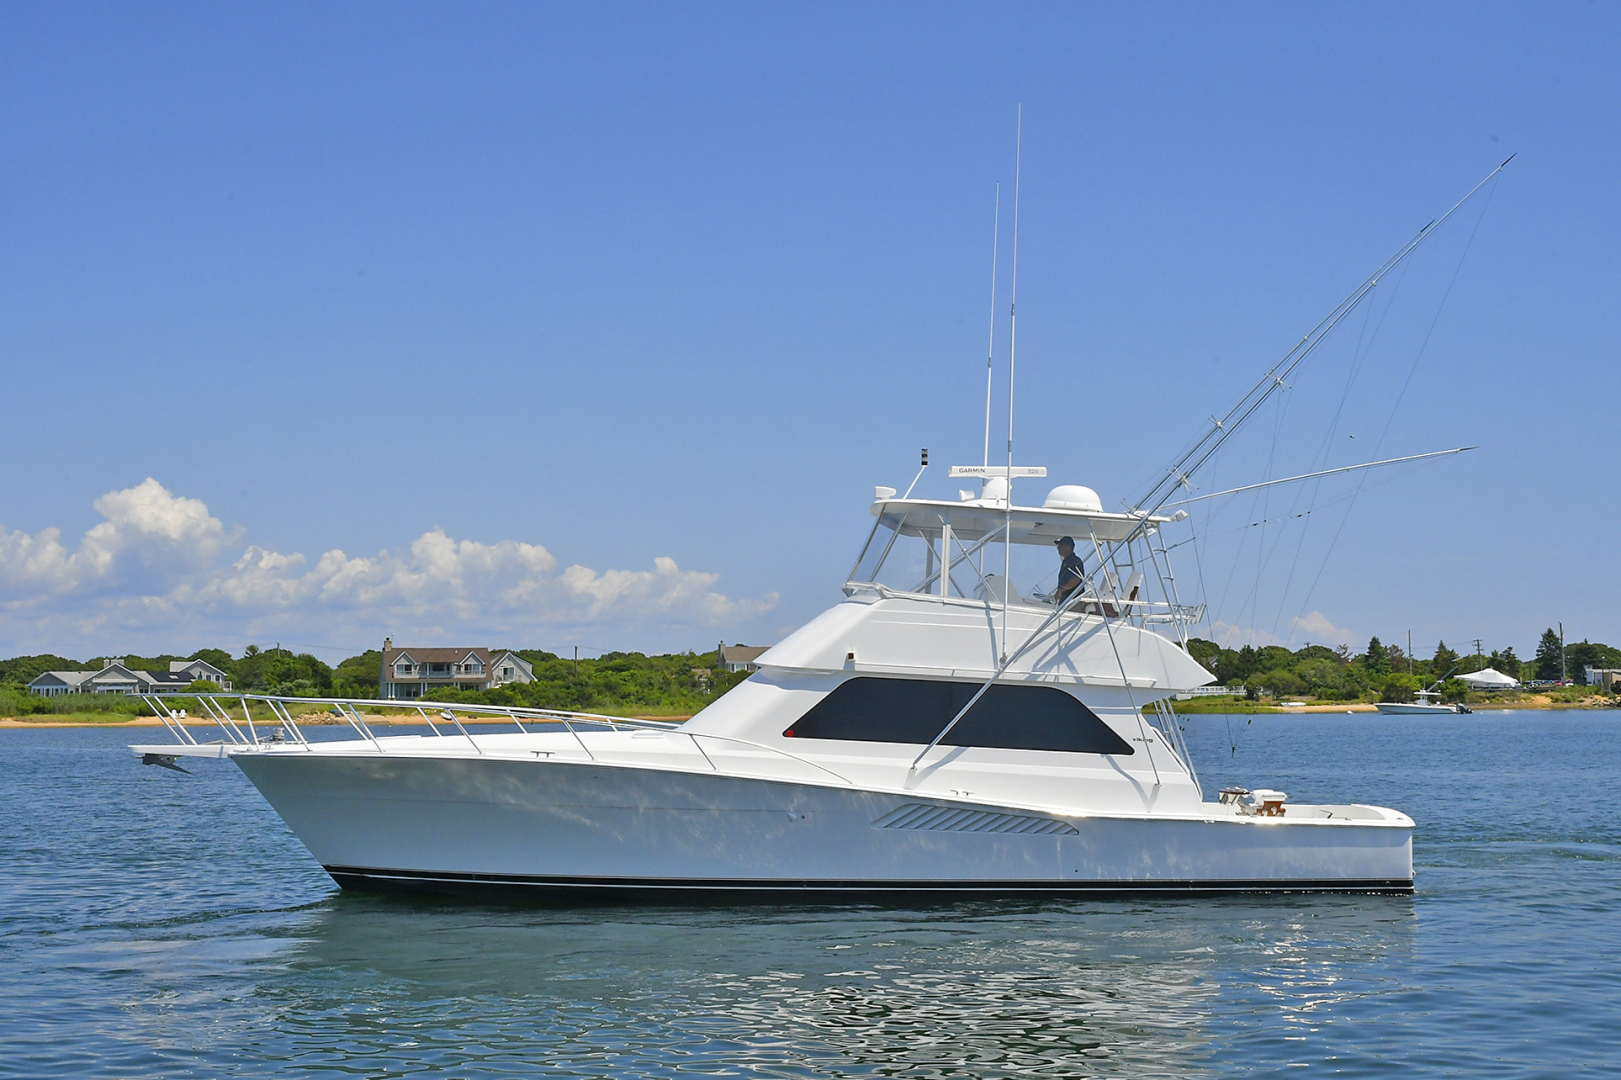 Viking Yachts for Sale Online - New and Used Viking Yacht Sales